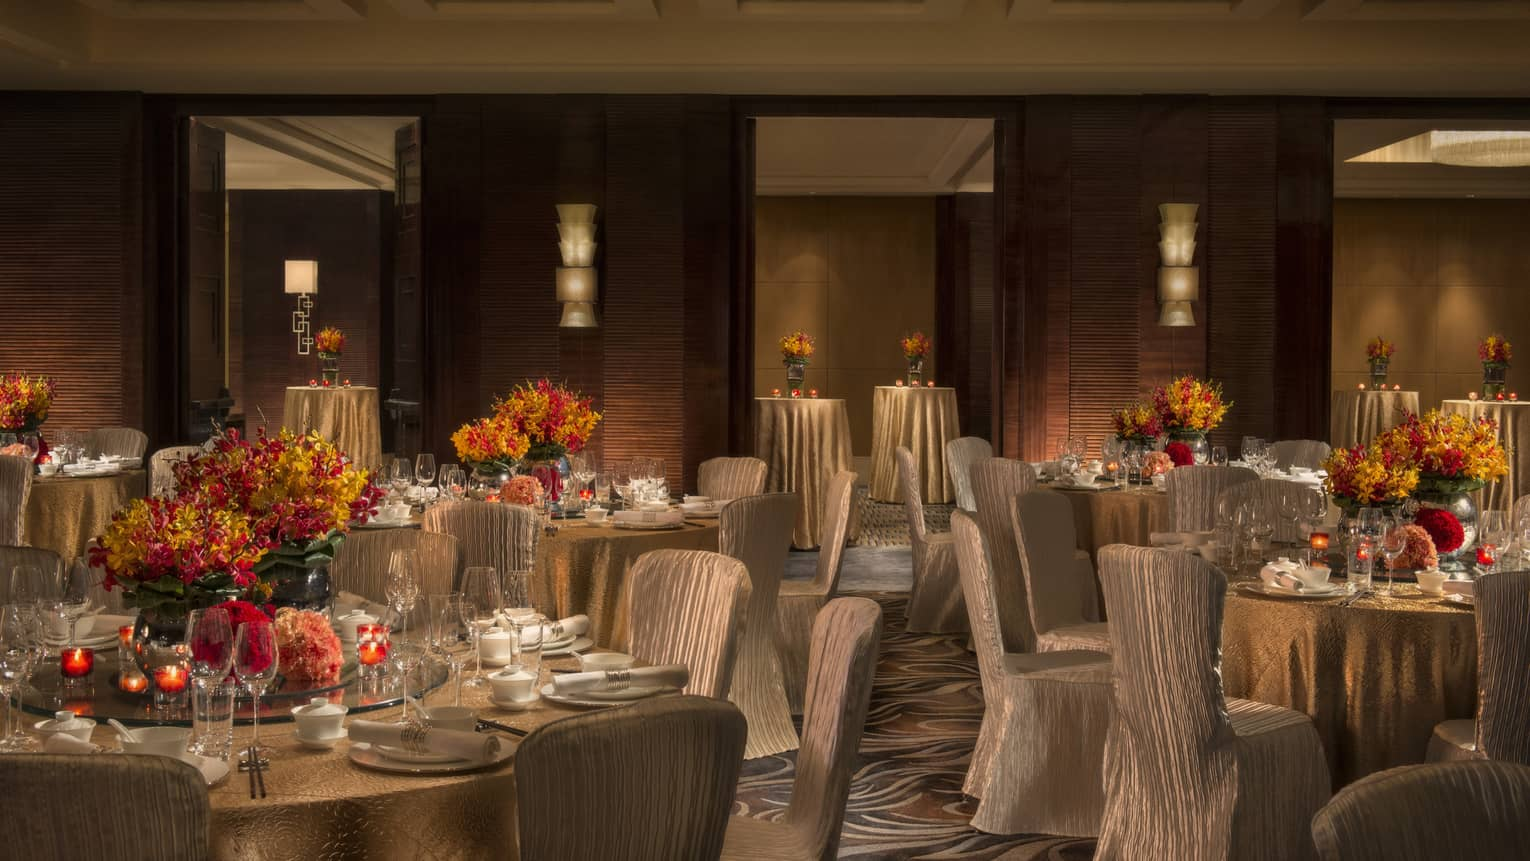 Dimly-lit ballroom with silk covered chairs around reception tables with orange flowers, candles